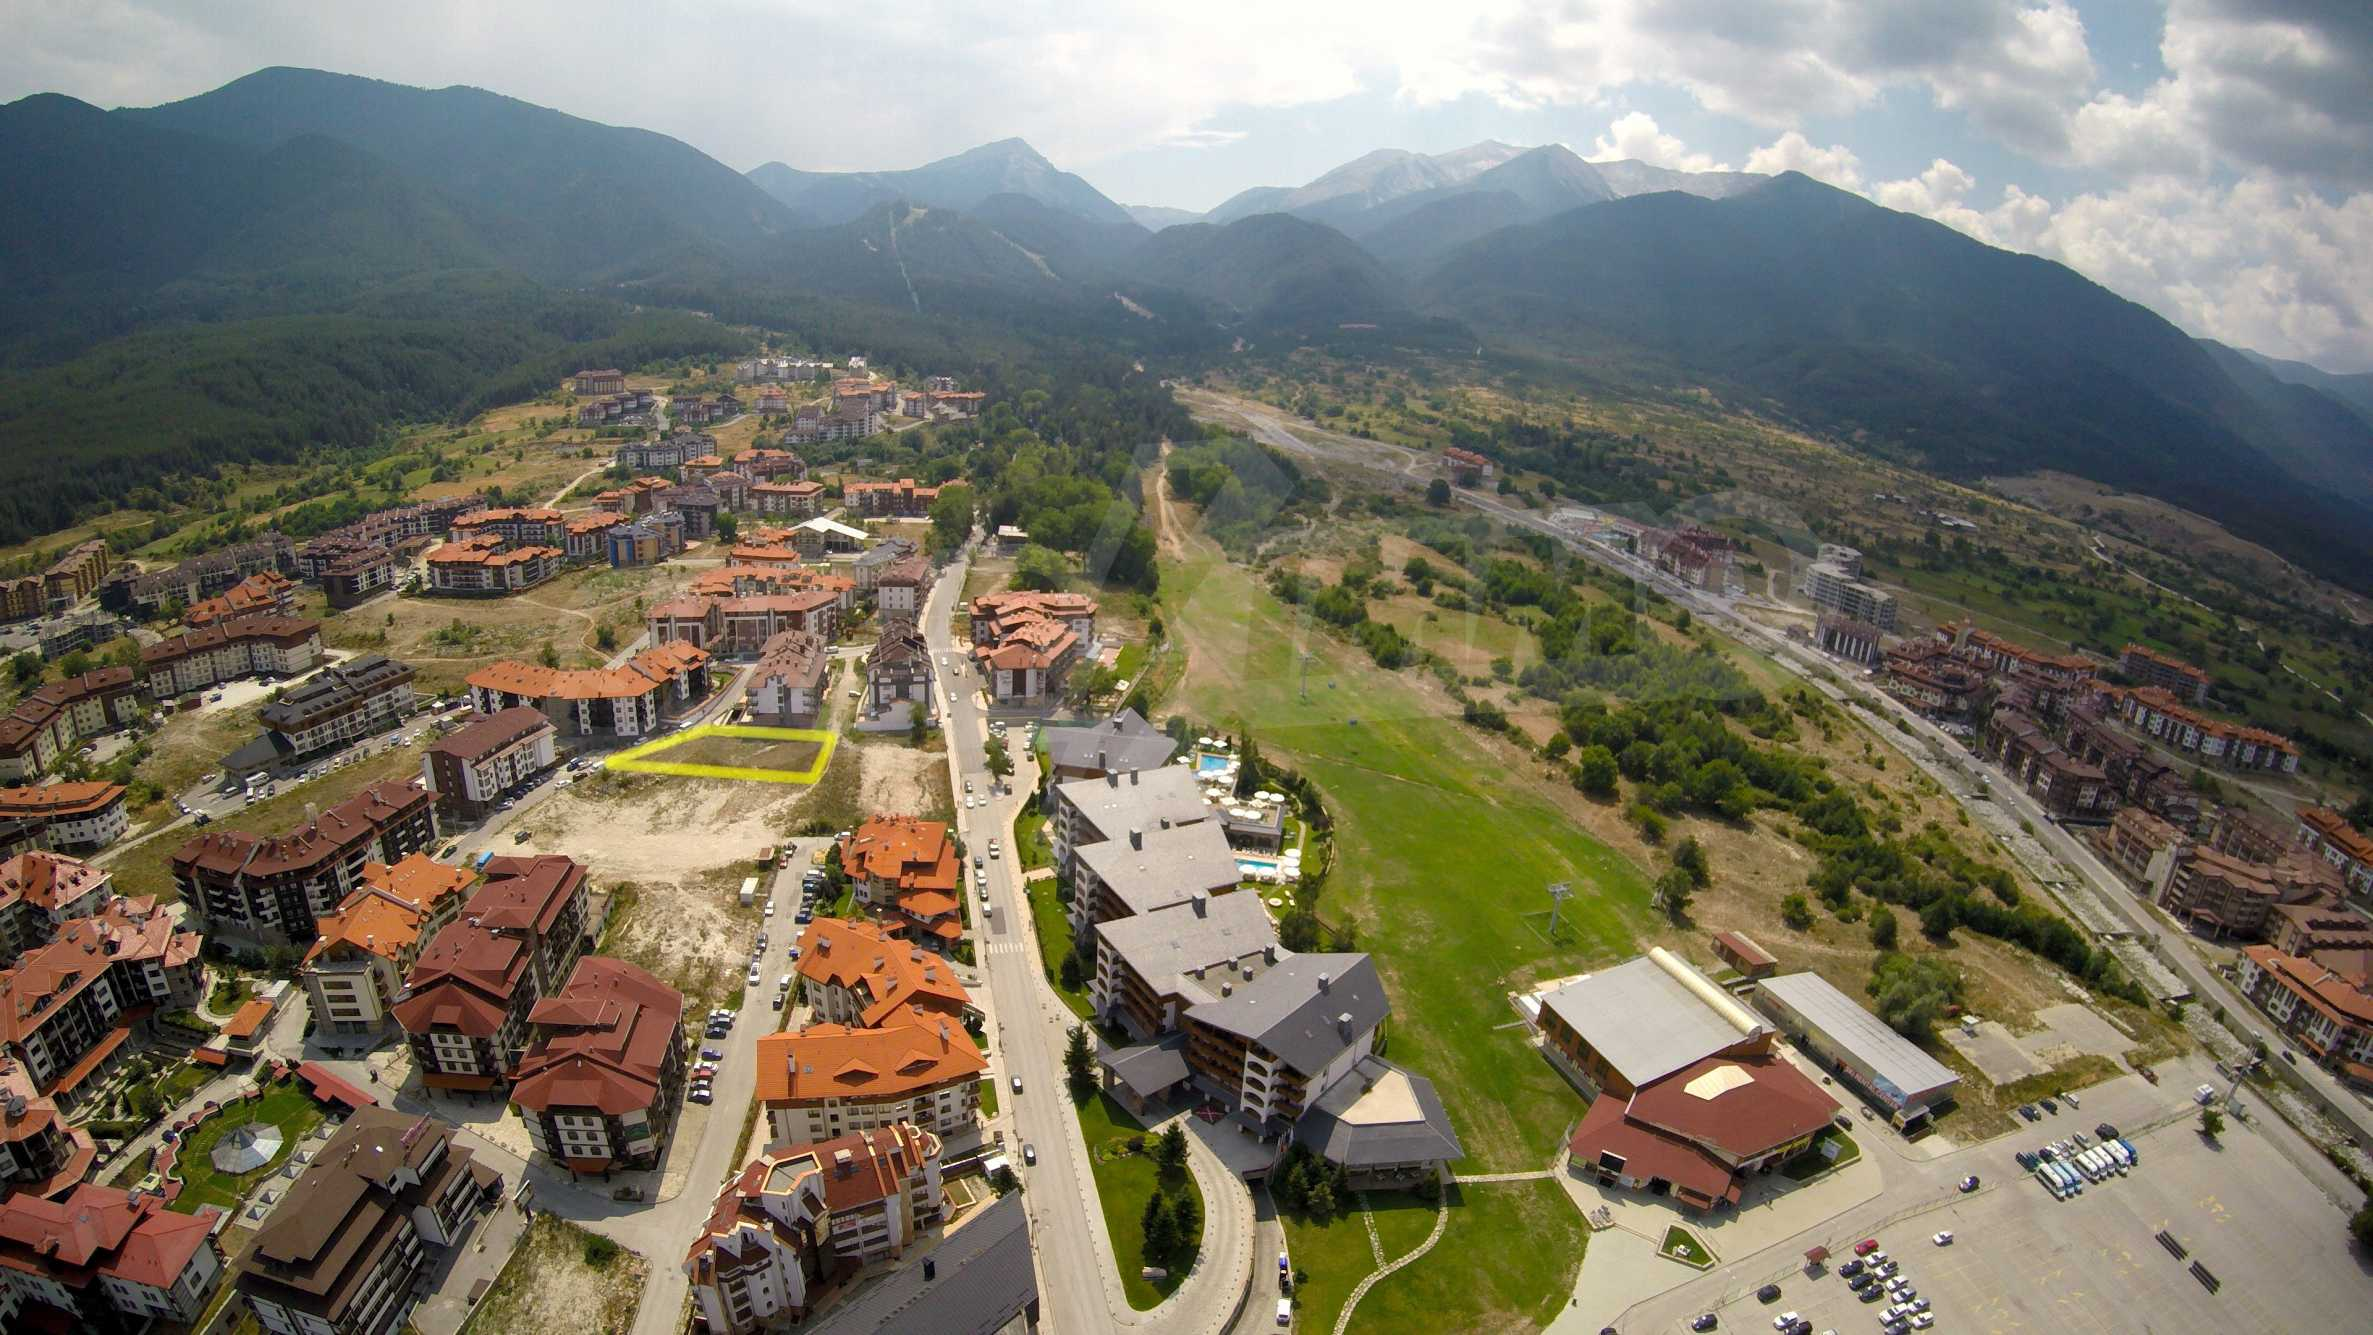 Chateau Blanc: Probably the best investment opportunity in Bansko... 29